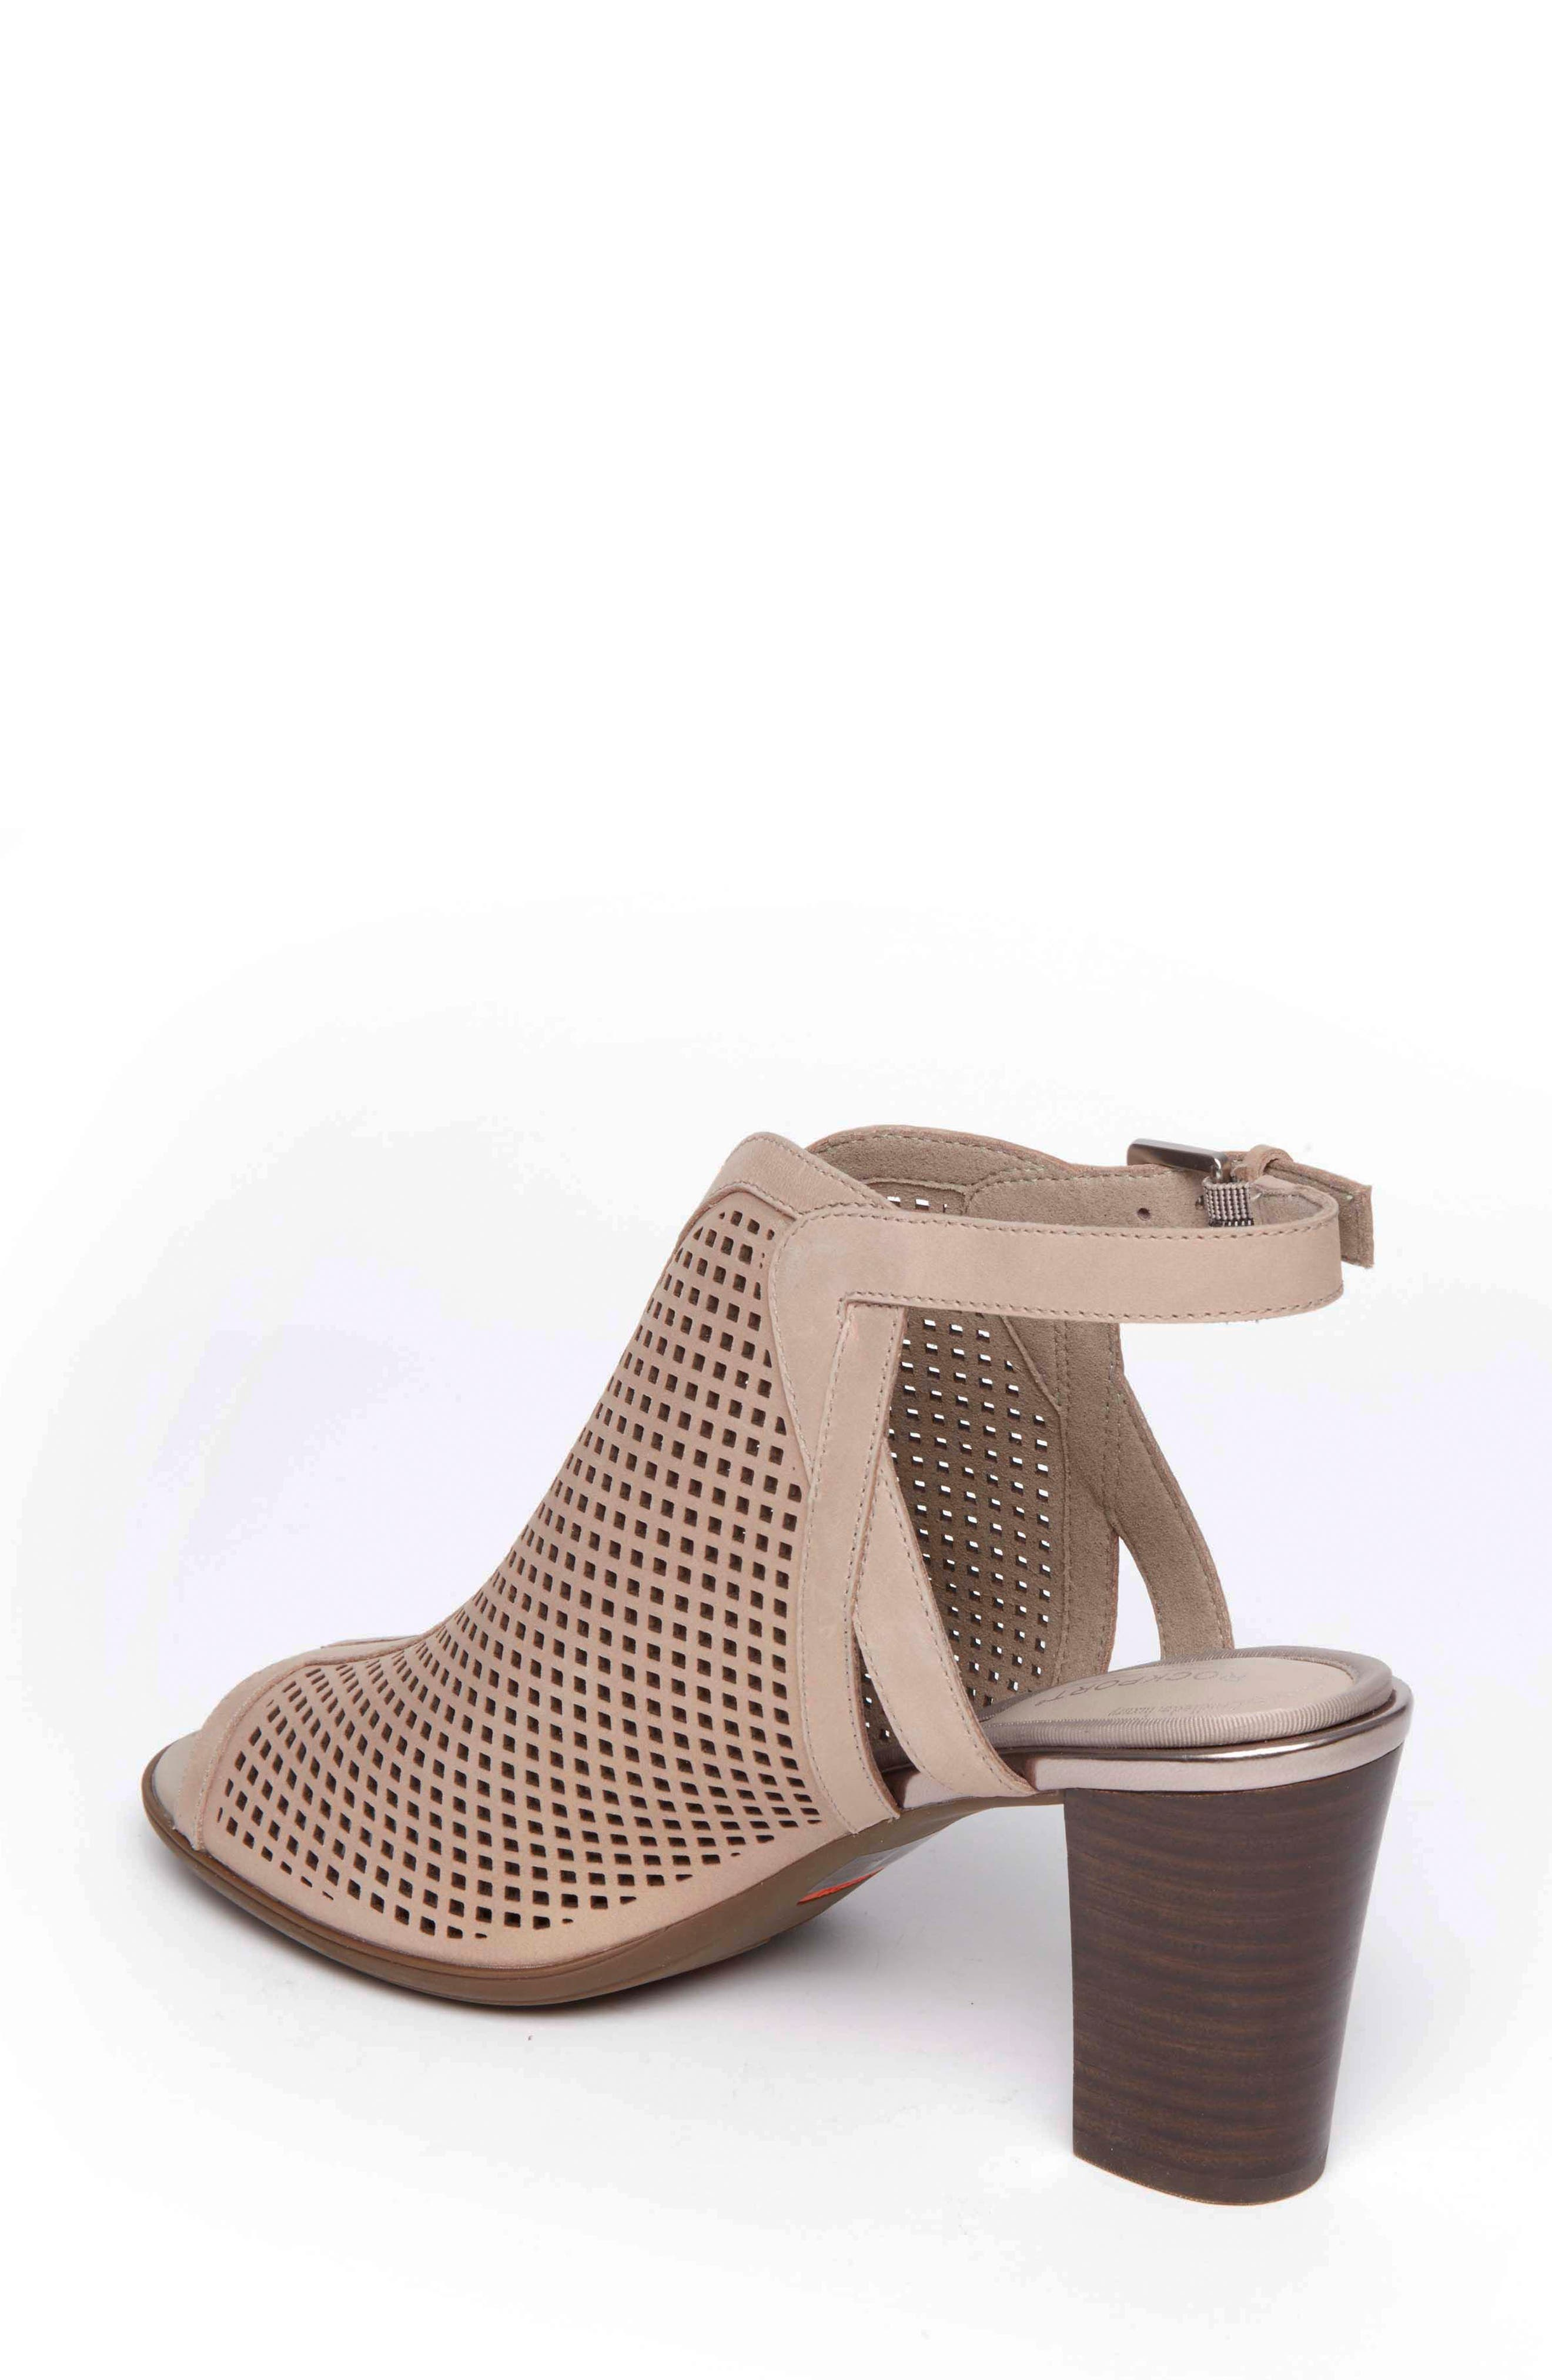 Total Motion Luxe Perforated Sandal,                             Alternate thumbnail 2, color,                             DOVE LEATHER